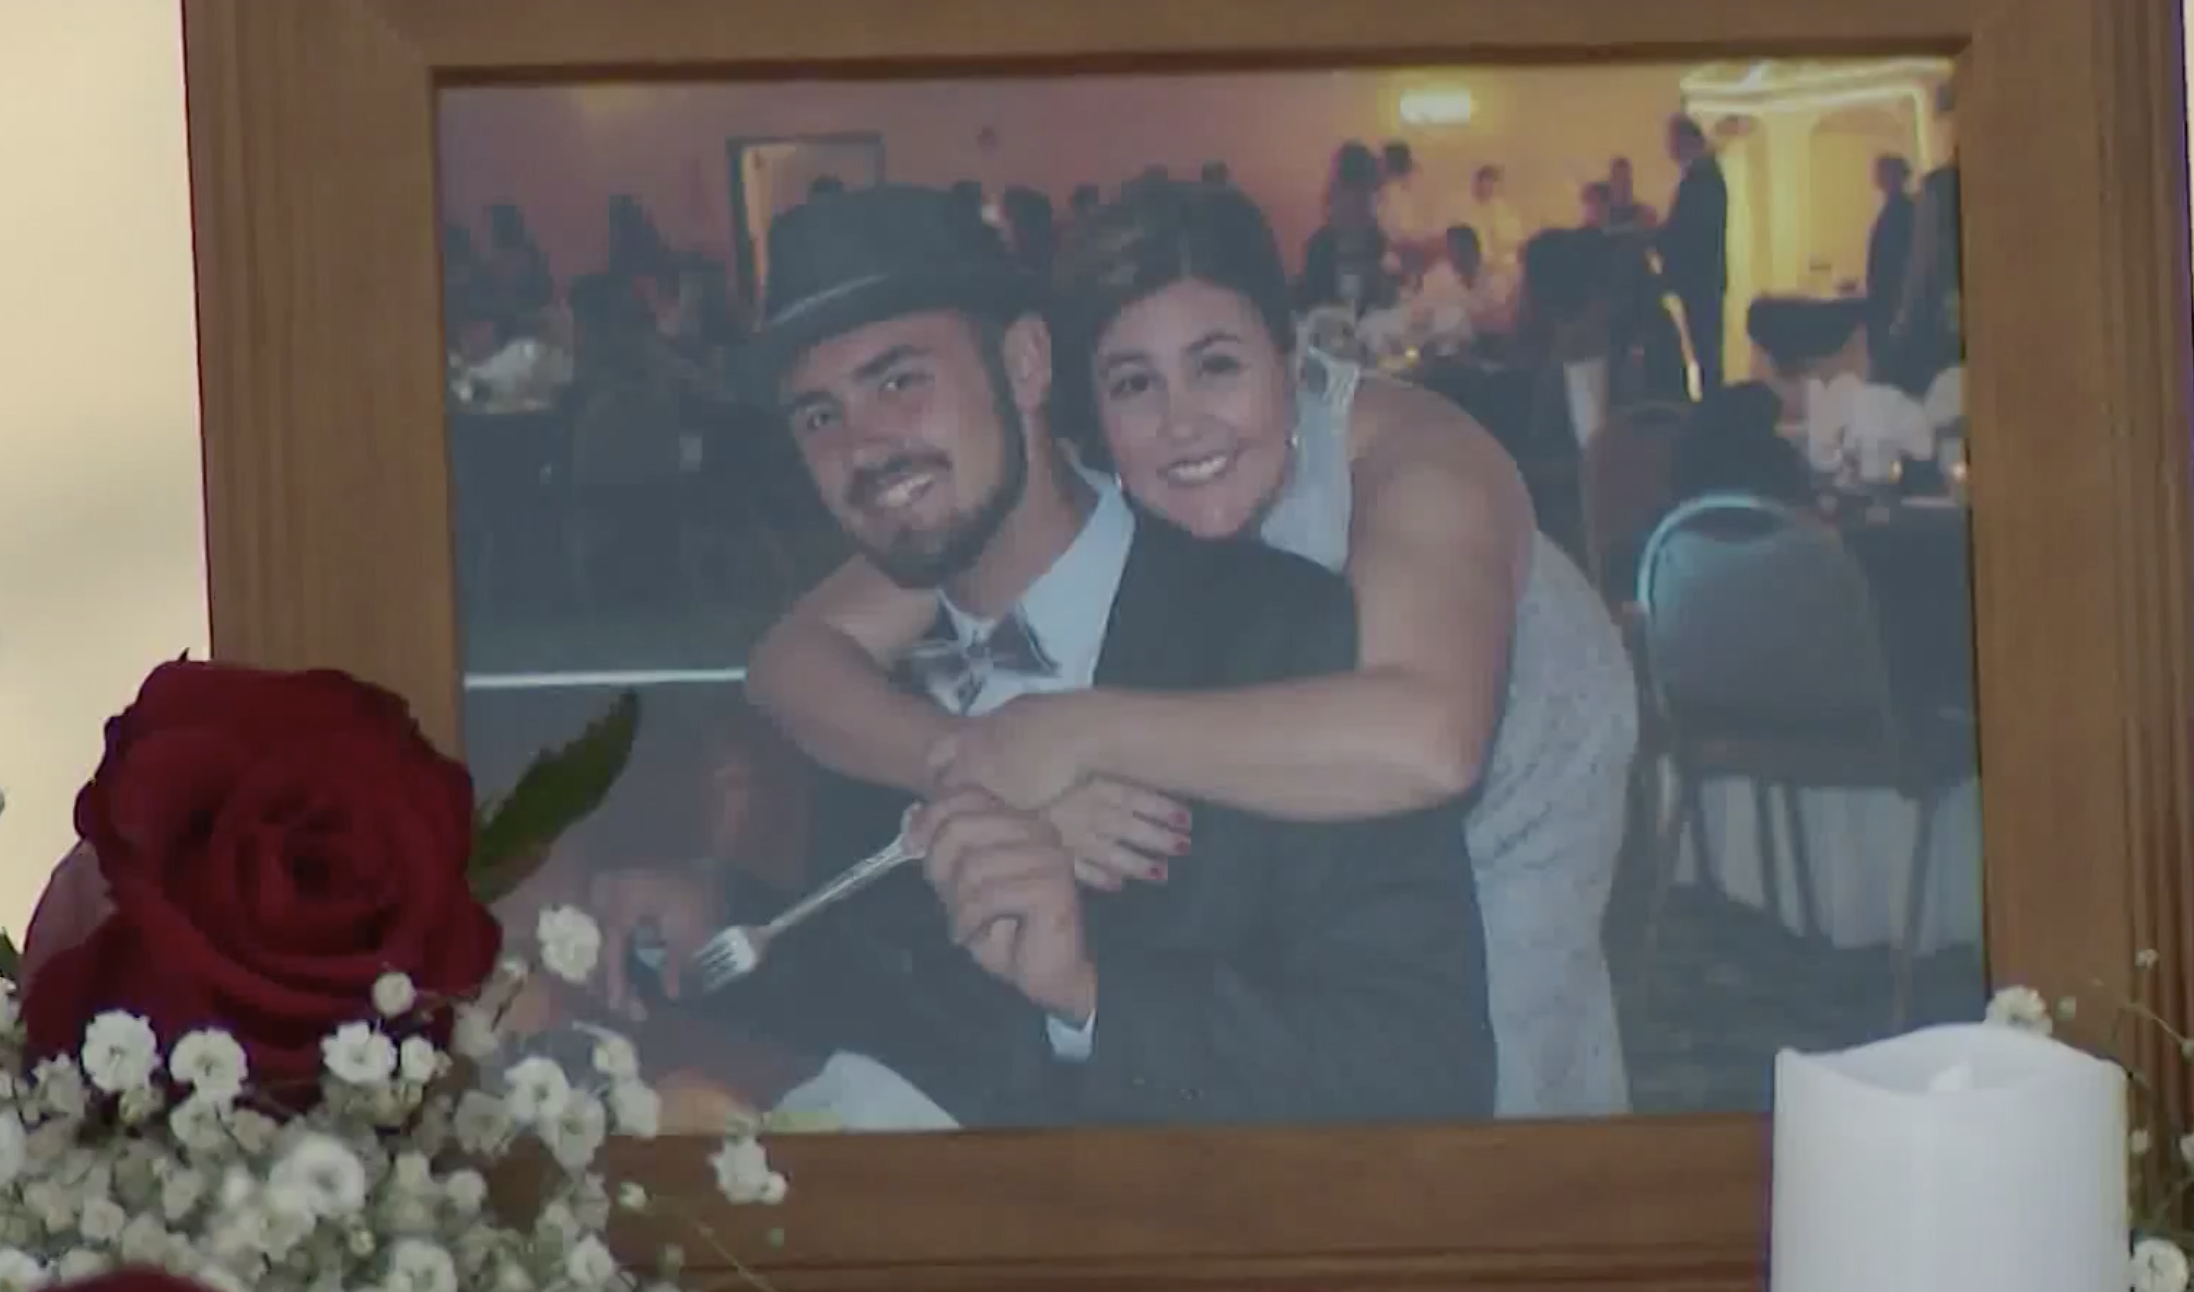 Cody Stewart seen in a photo displayed at his memorial in Huntington Beach on Nov. 21, 2020. (KTLA)